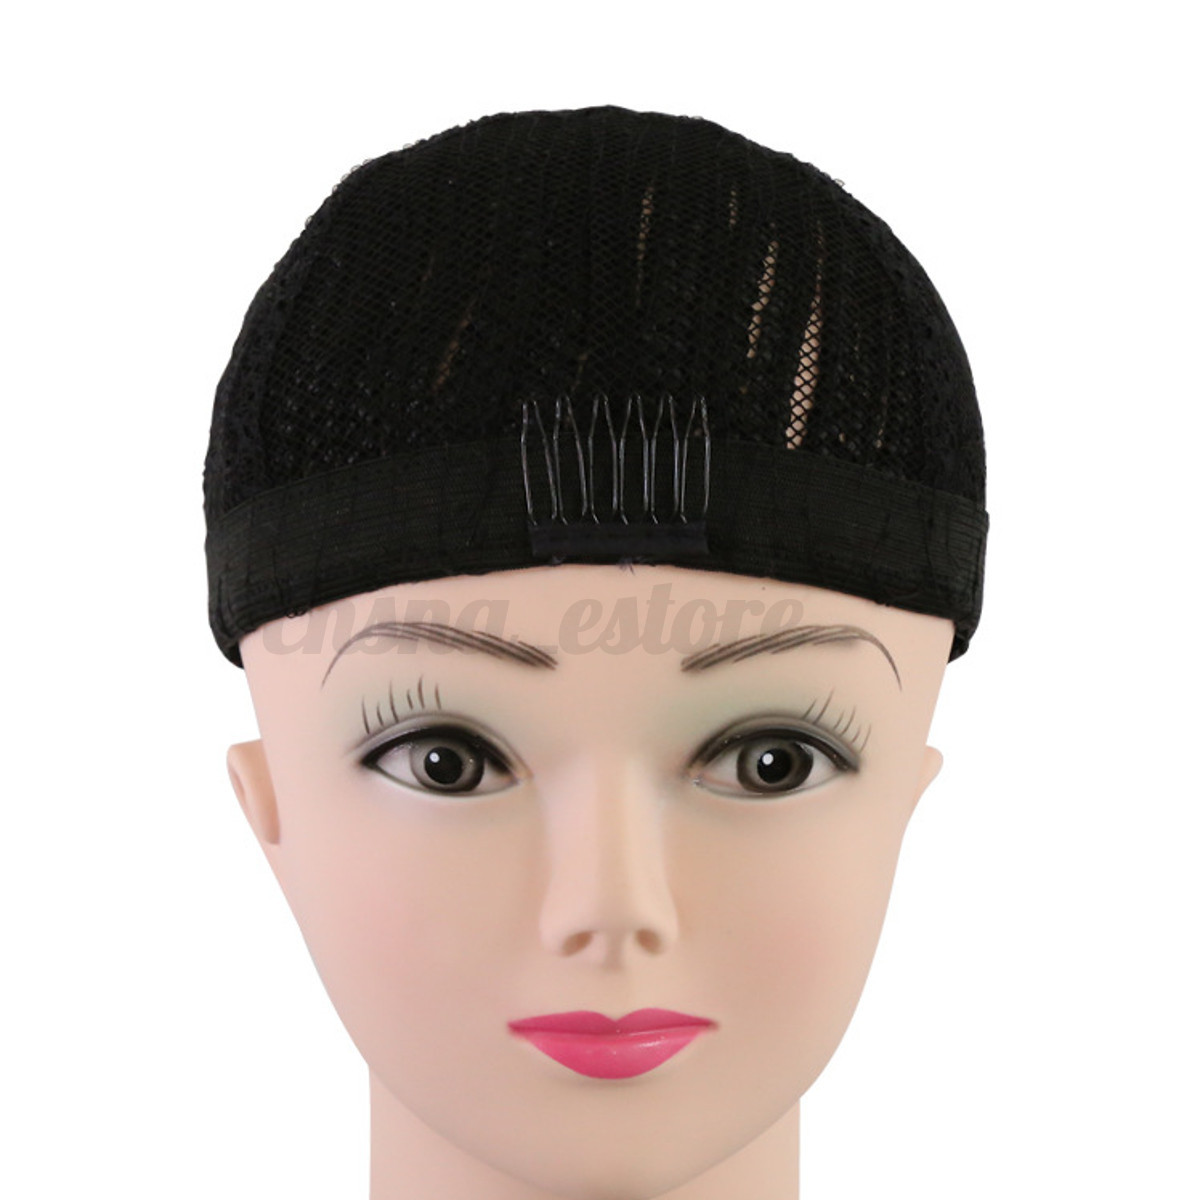 Paypal Help Usa Cornrow Braided Wig Cap Black Making Wigs With Clips